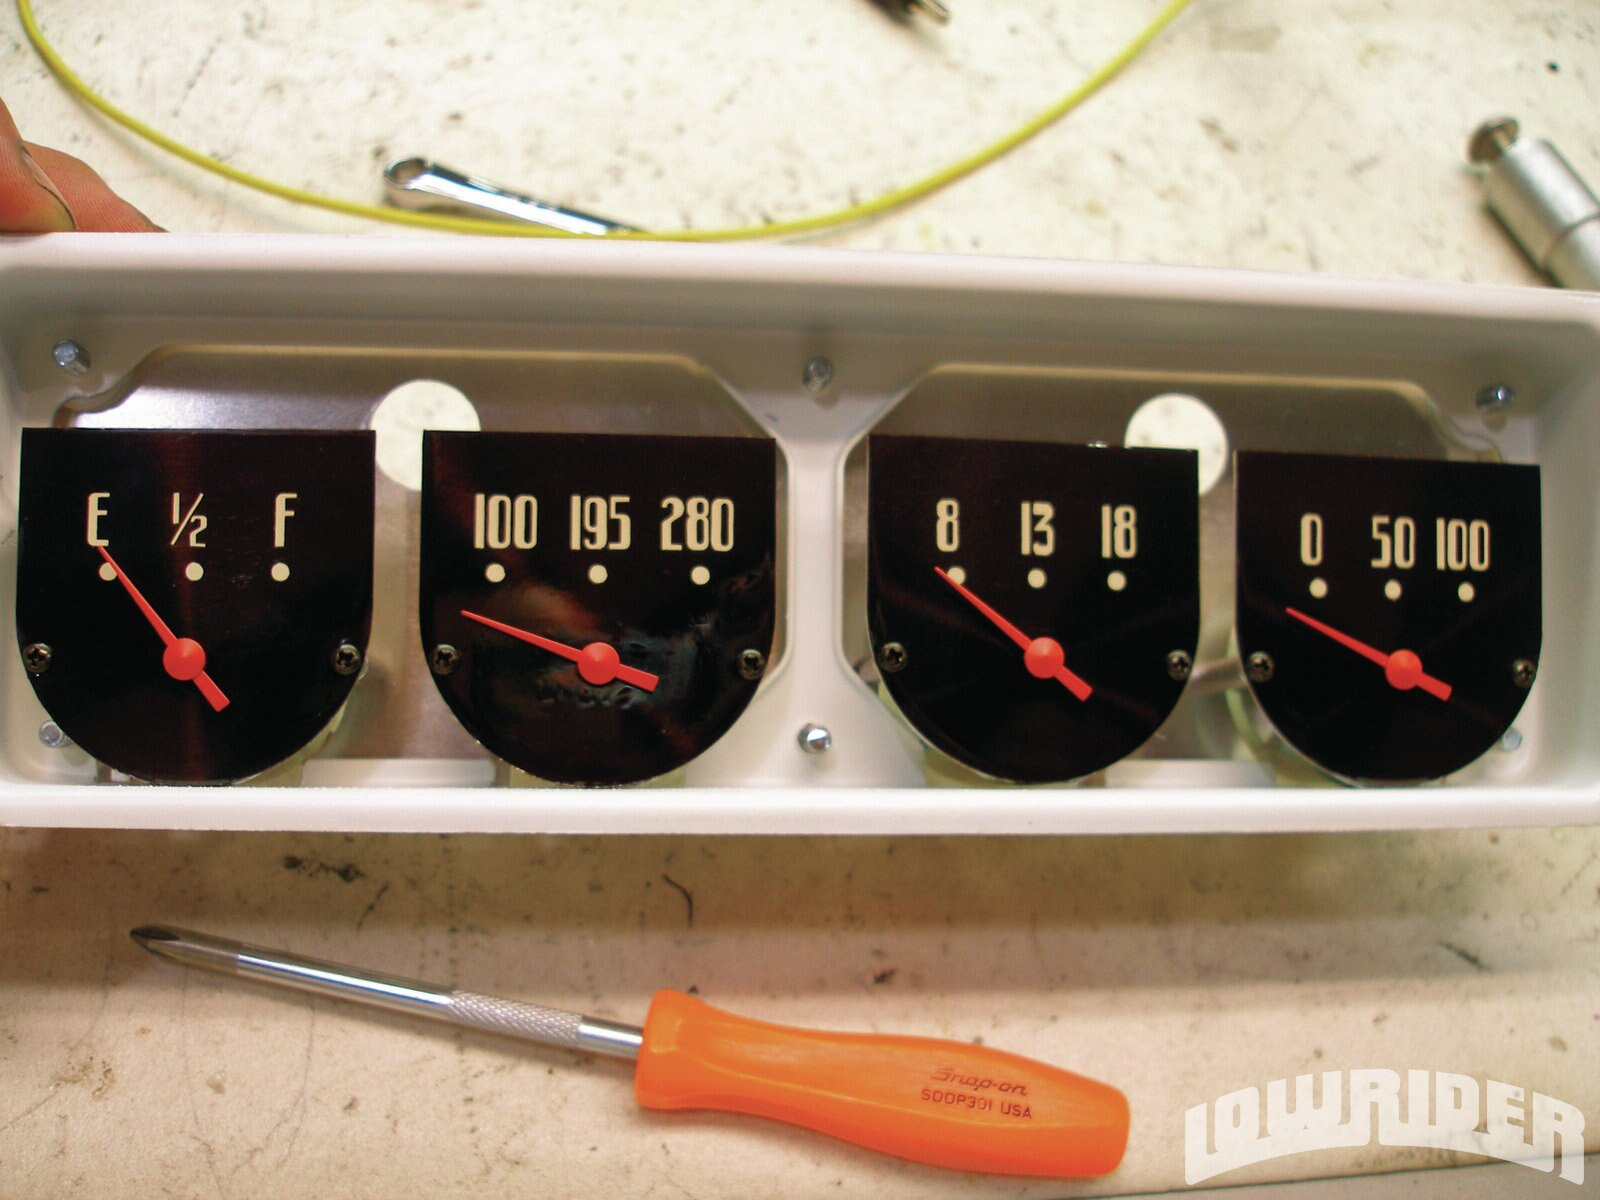 <strong>15</strong>. All four gauges mount to a single aluminum plate that is then installed into the modified stock housing. The gauge faces have been treated to the same—albeit less intricate—retrofit, graphically speaking.